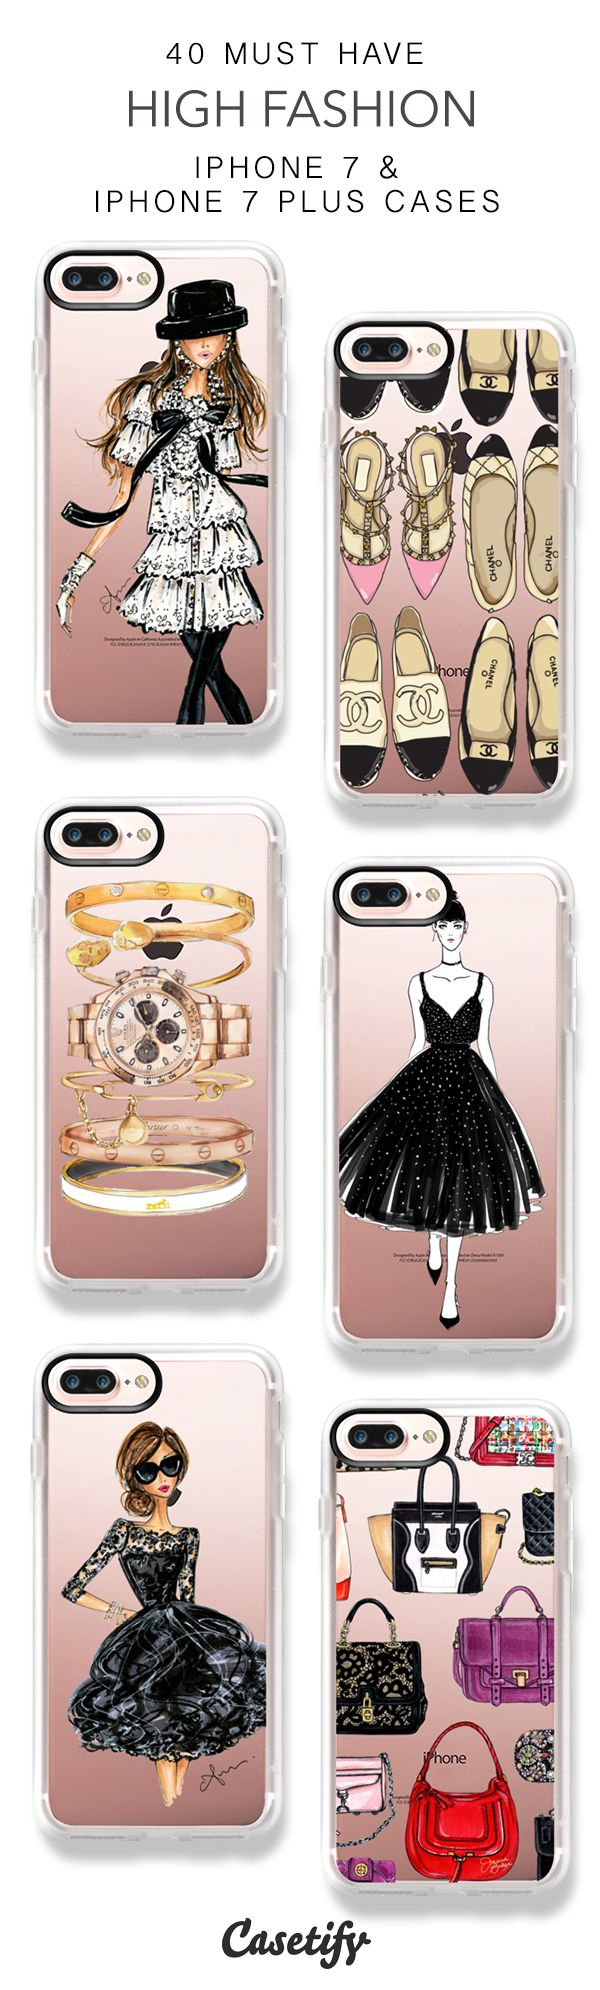 40 Must Have High Fashion iPhone 7 Cases and iPhone 7 Plus Cases. More Fashion iPhone case here > https://www.casetify.com/collections/top_100_designs#/?vc=uutcHzRcgU